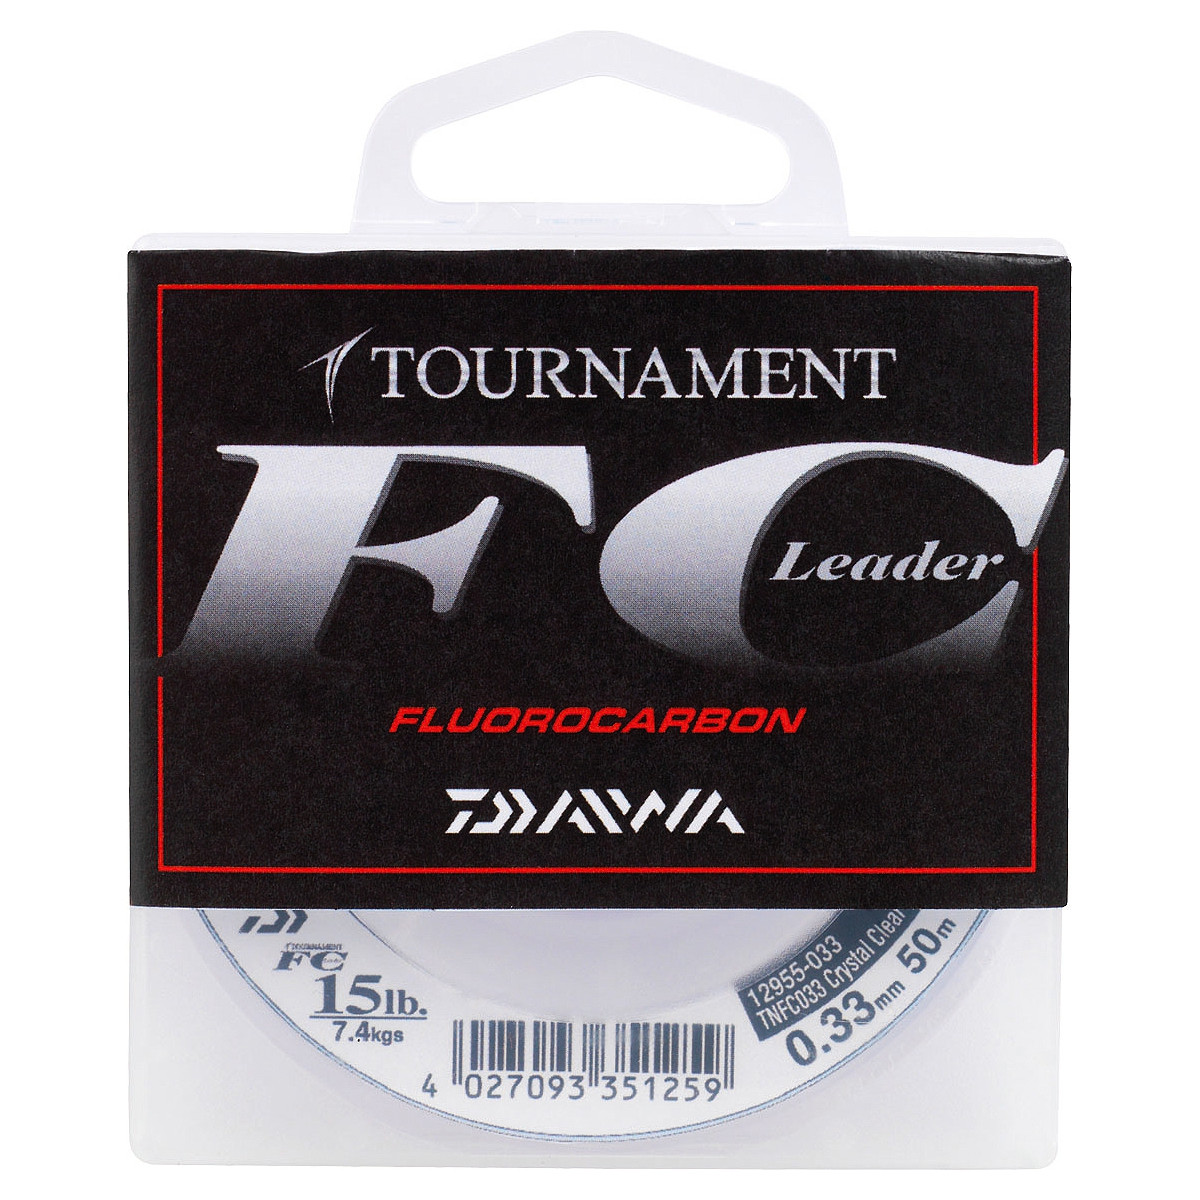 FLUOROCARBON TOURNAMENT FC LEADER DAIWA 50M